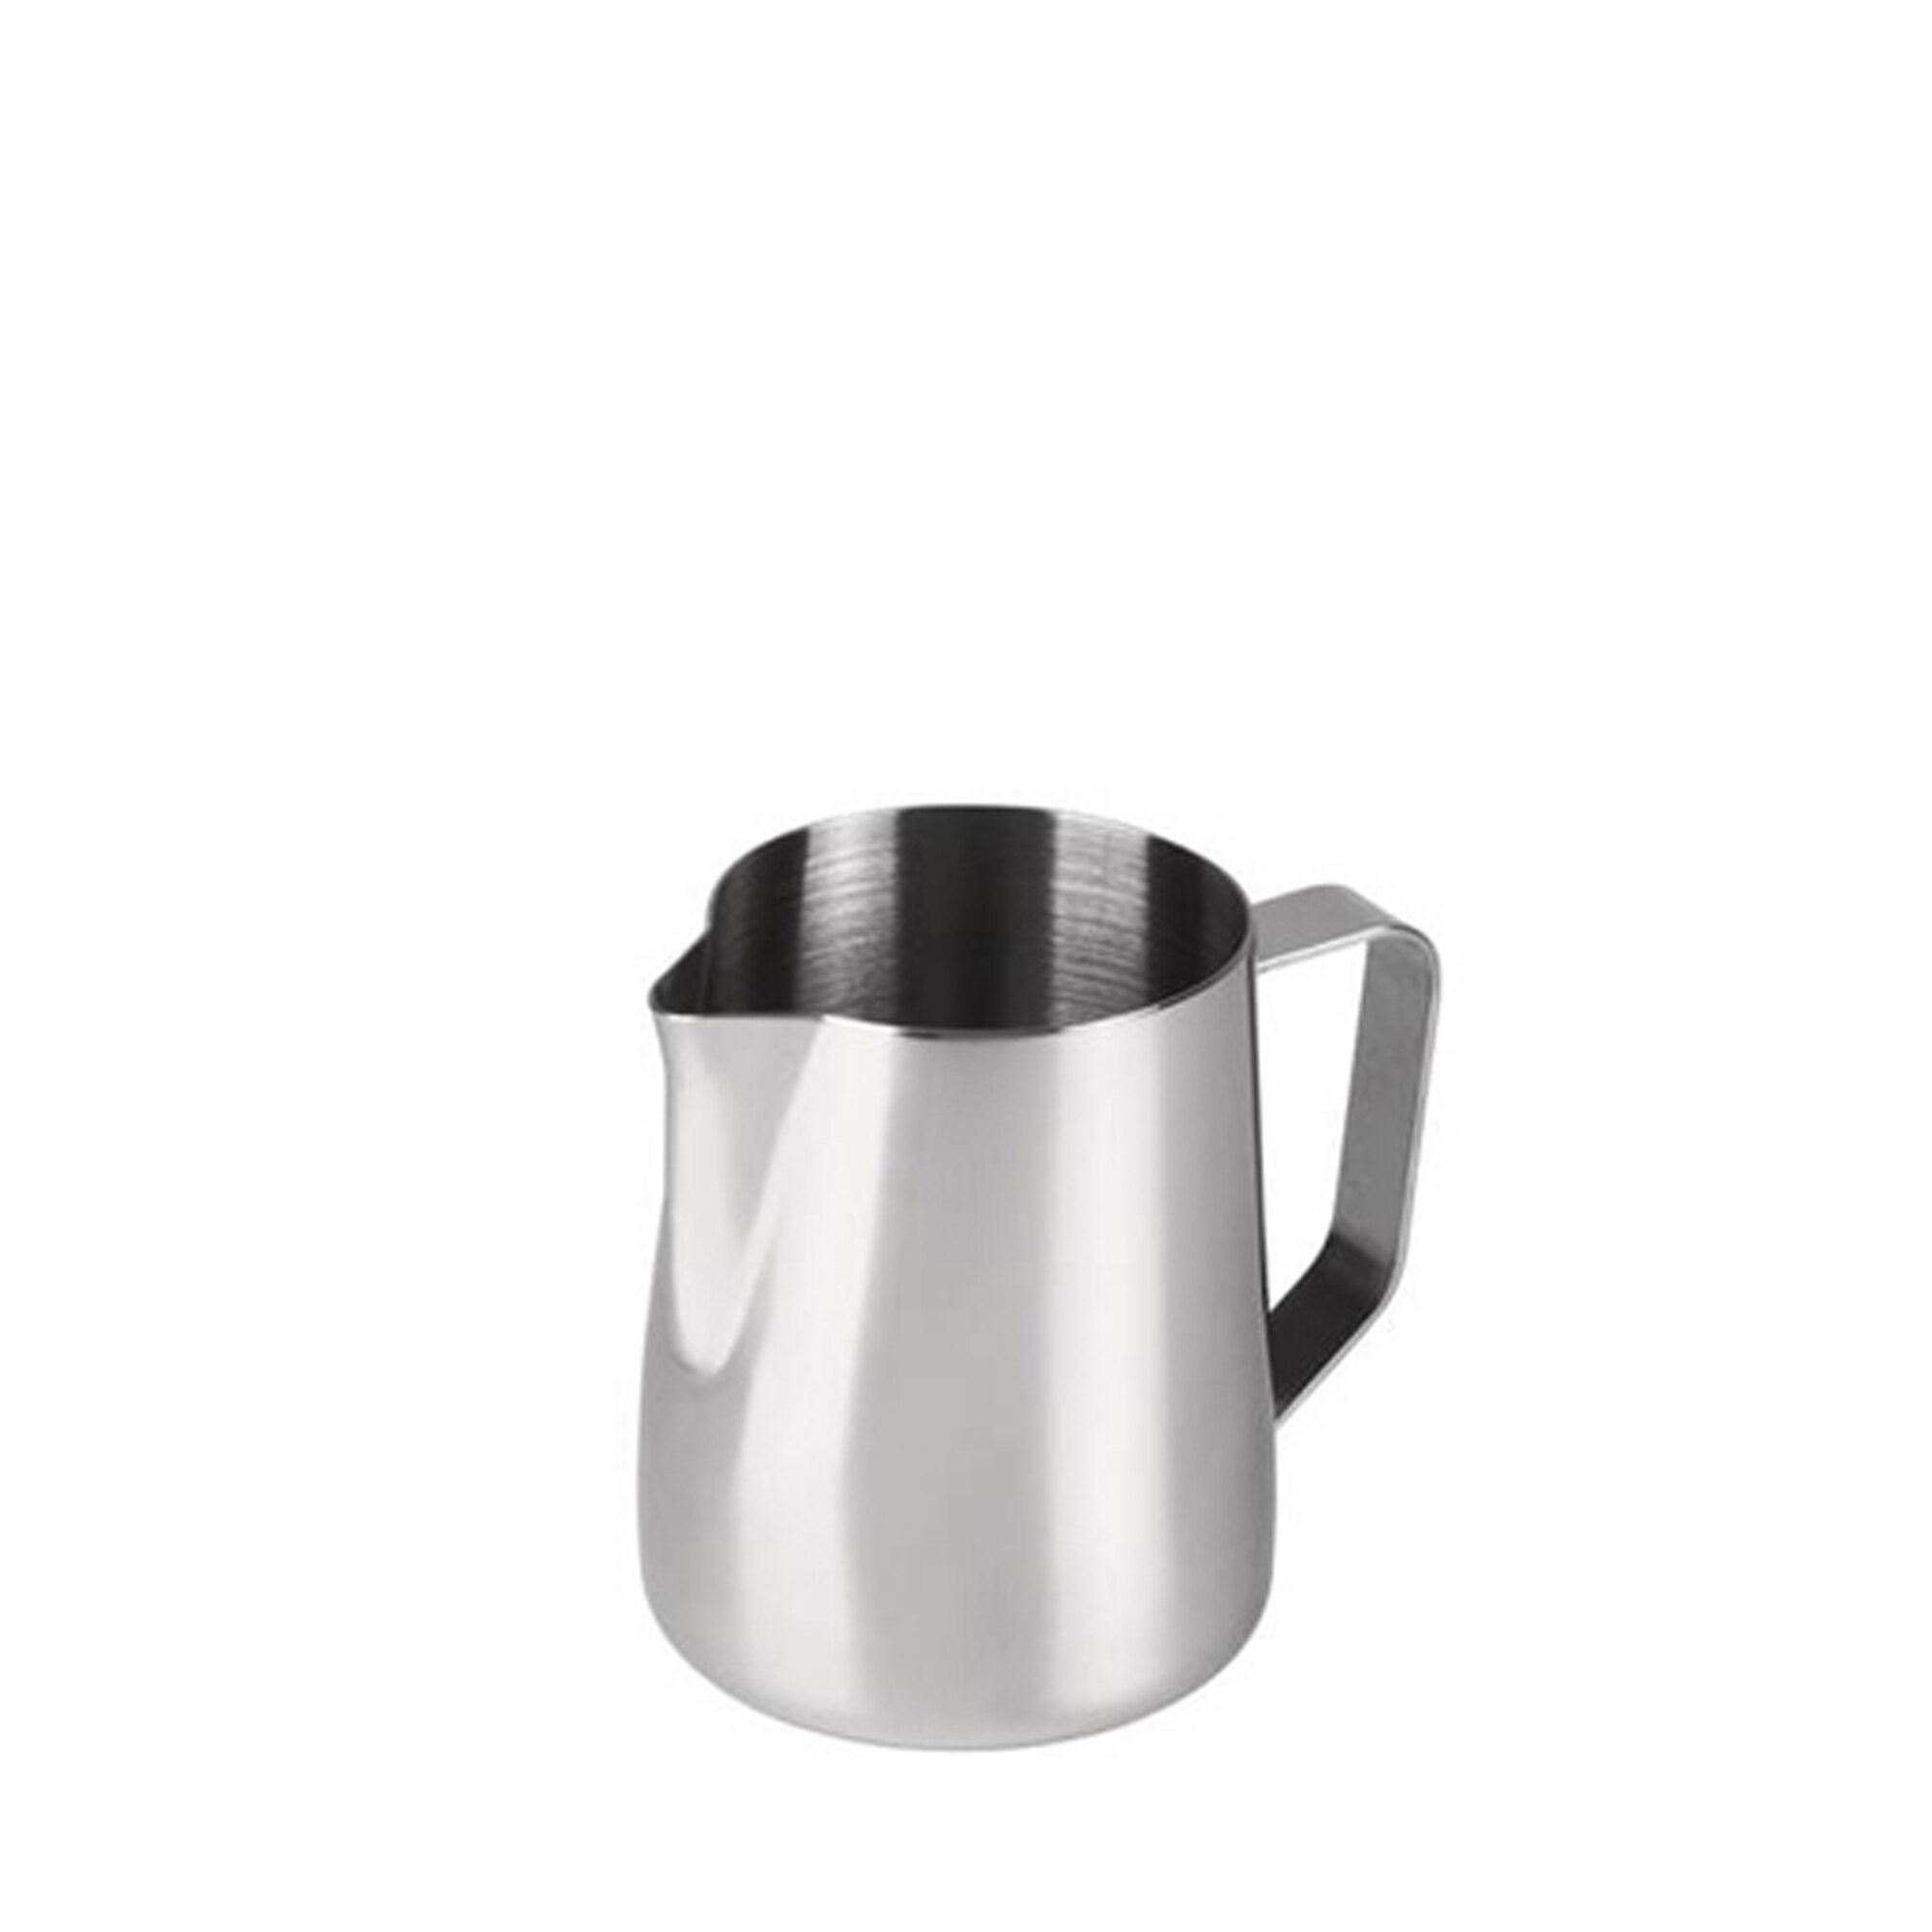 illy malaysia official latte art steaming pitcher 12oz for cappuccino and coffee